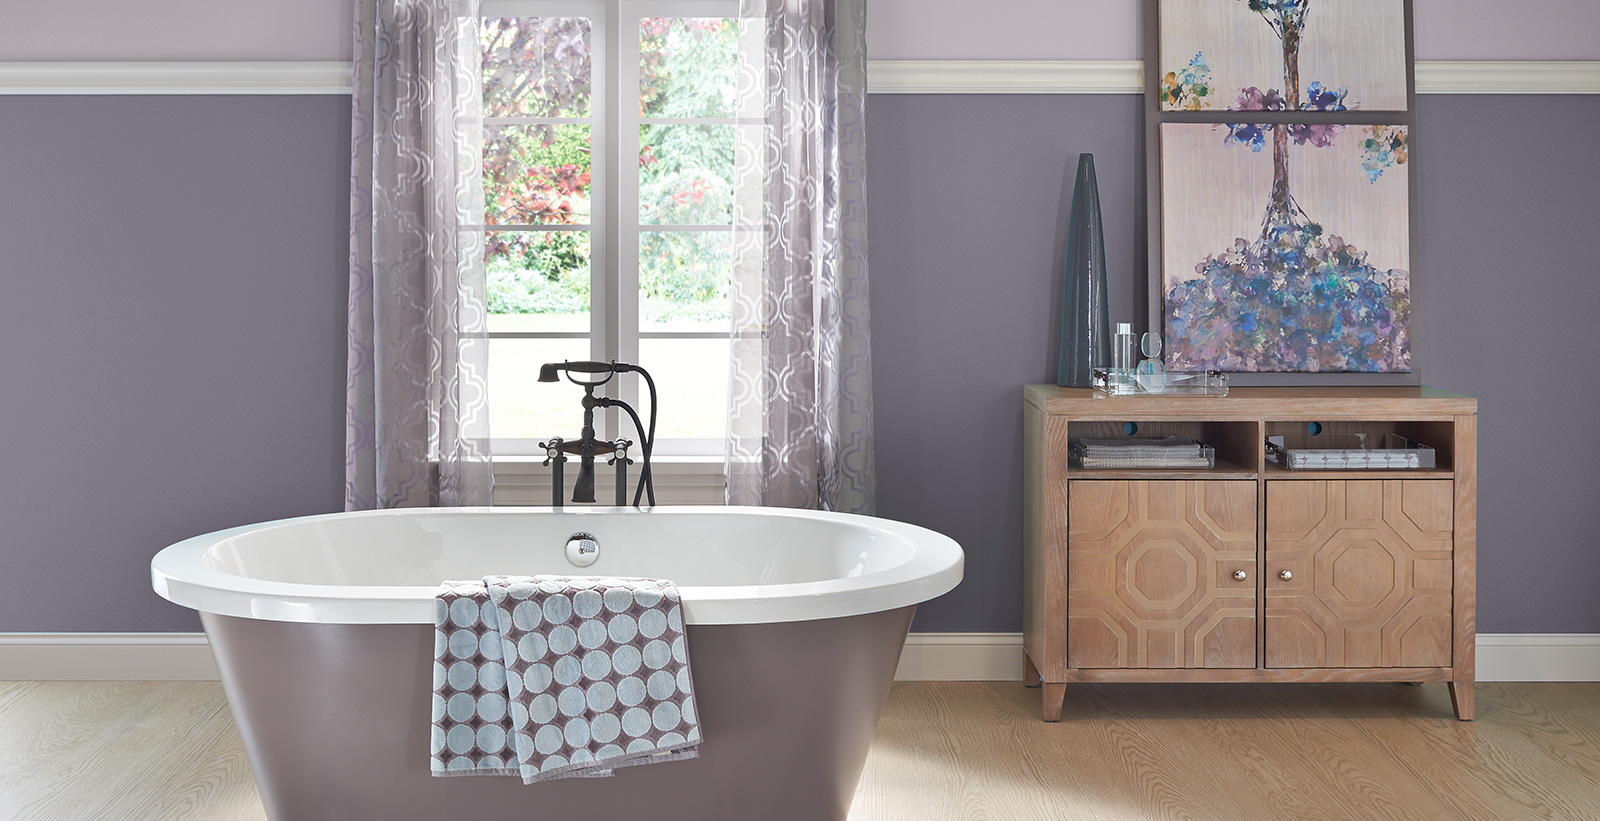 Relaxed and calming styled bathroom with purple walls and white trim.